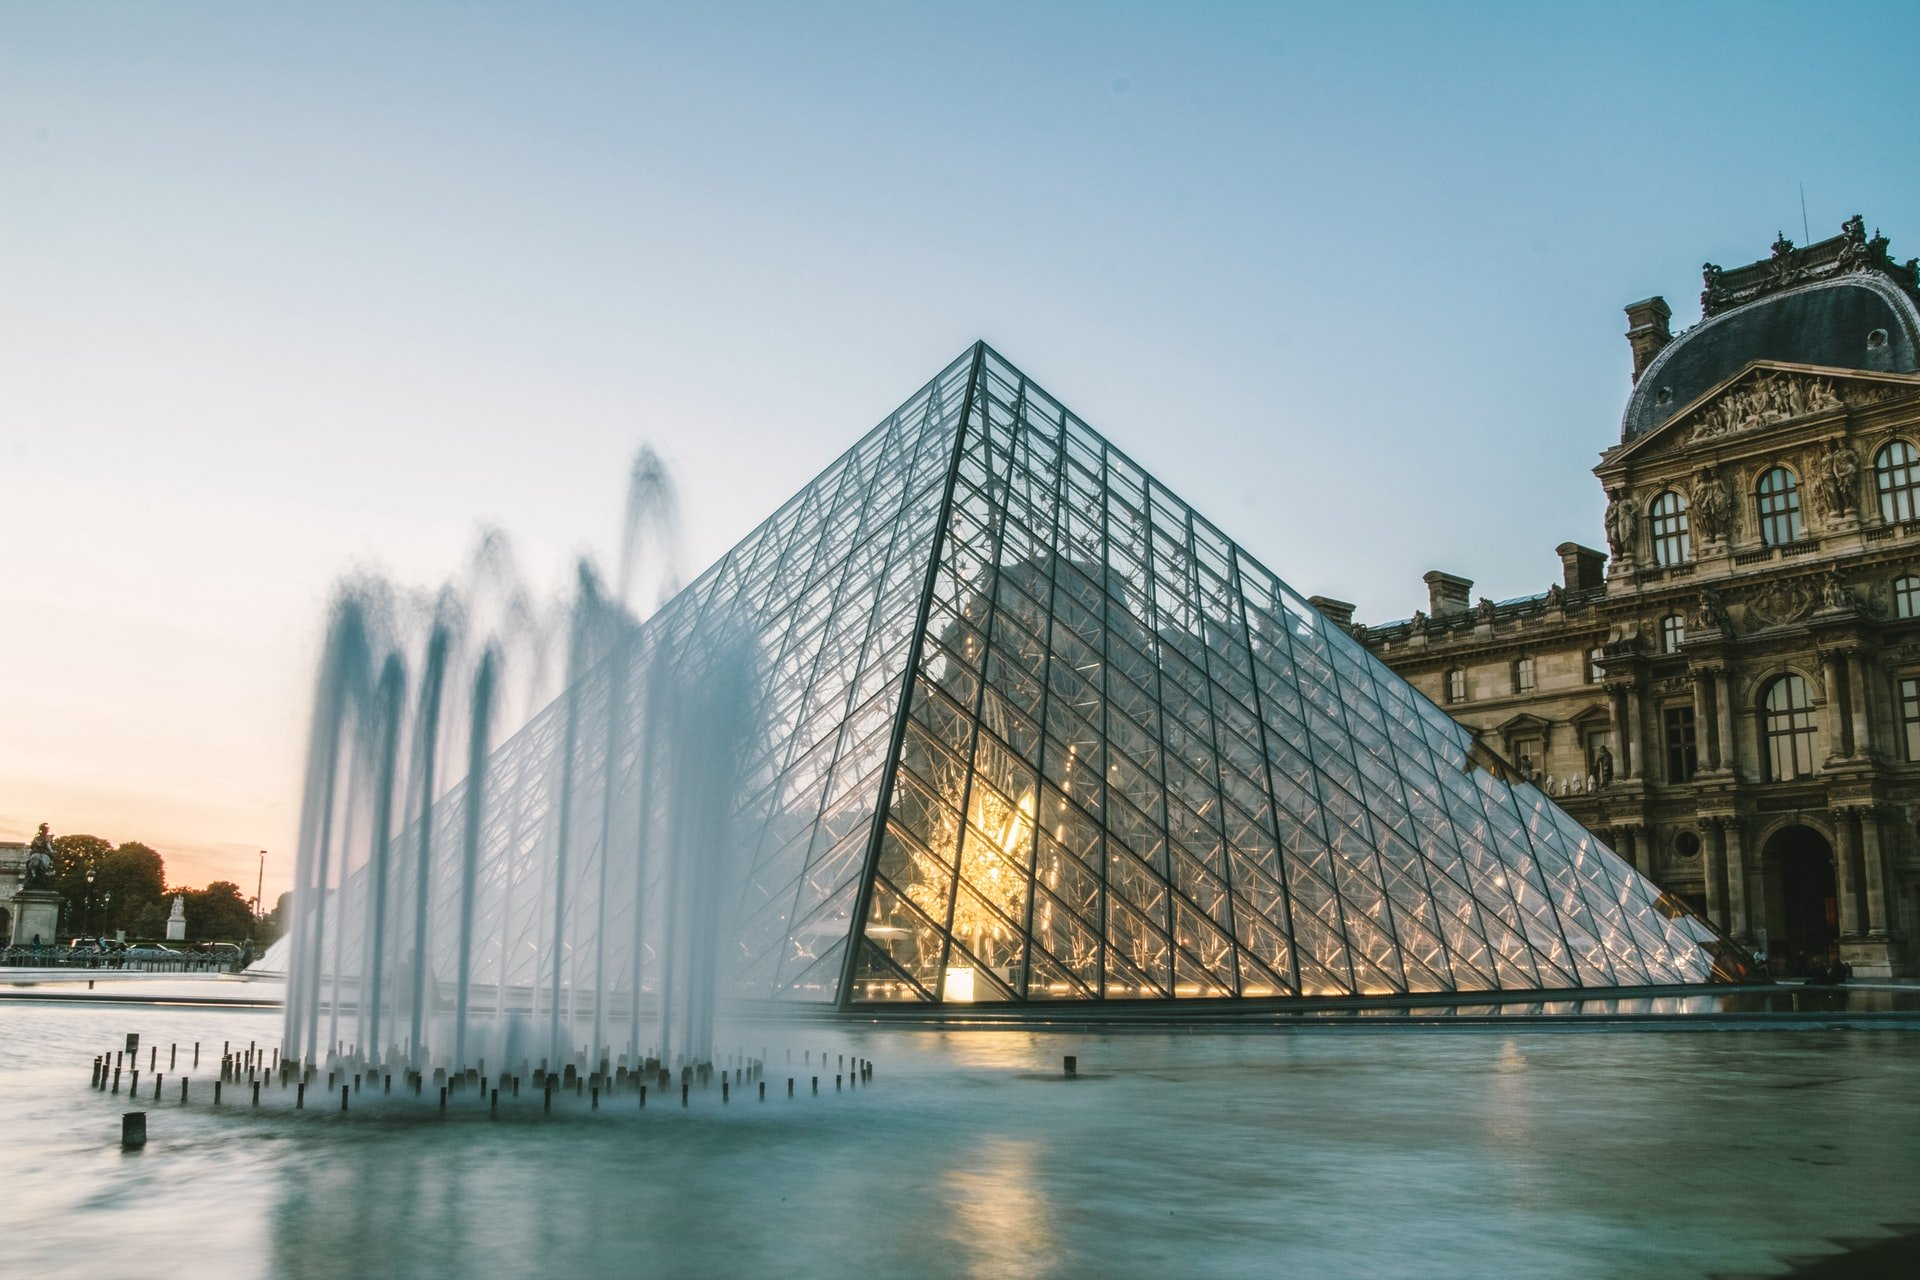 Louvre Pyramid at night with fountains in foreground